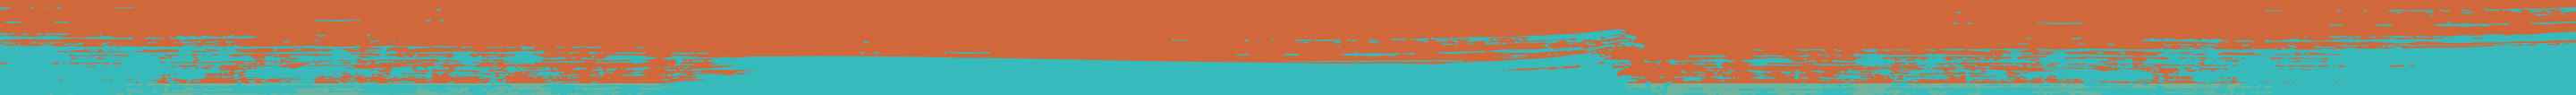 Beyond - Orange to Purina Teal Divider